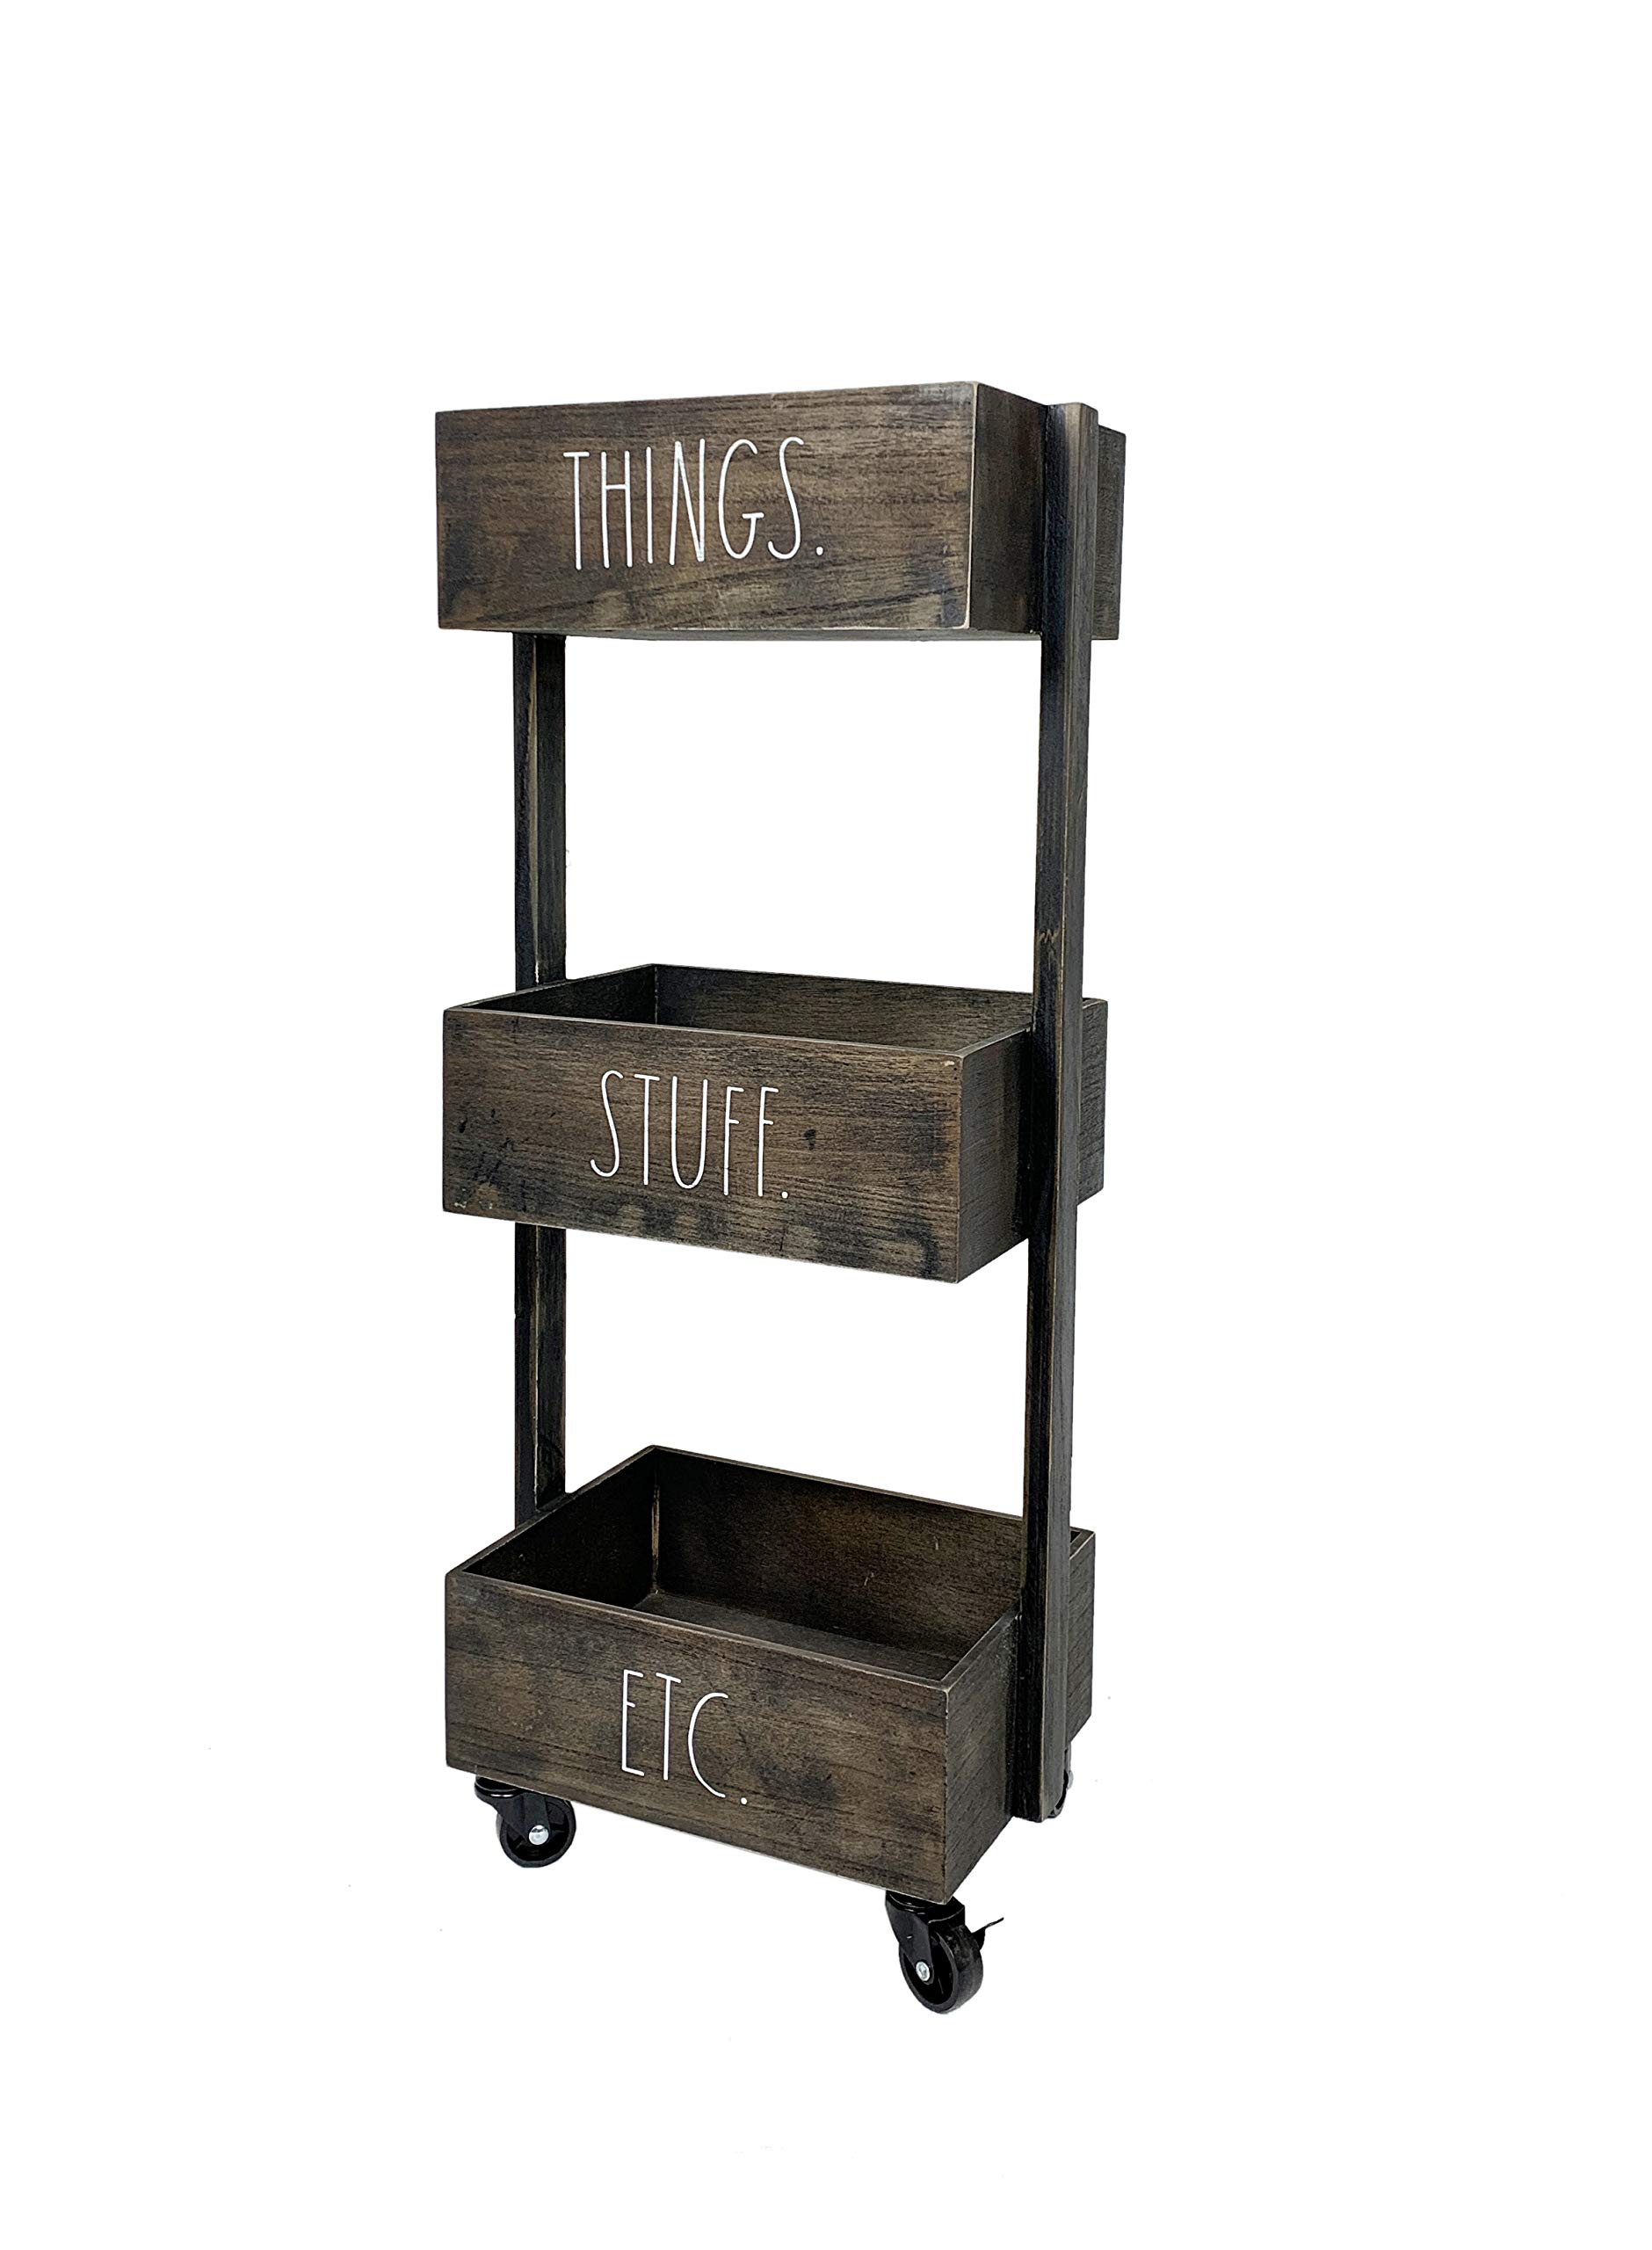 Rae Dunn 3 Tier Wheeled Organizer - Wood Caddy - Chic and Stylish Portable Wood Storage Bin for Office, Home or Kitchen by Rae Dunn